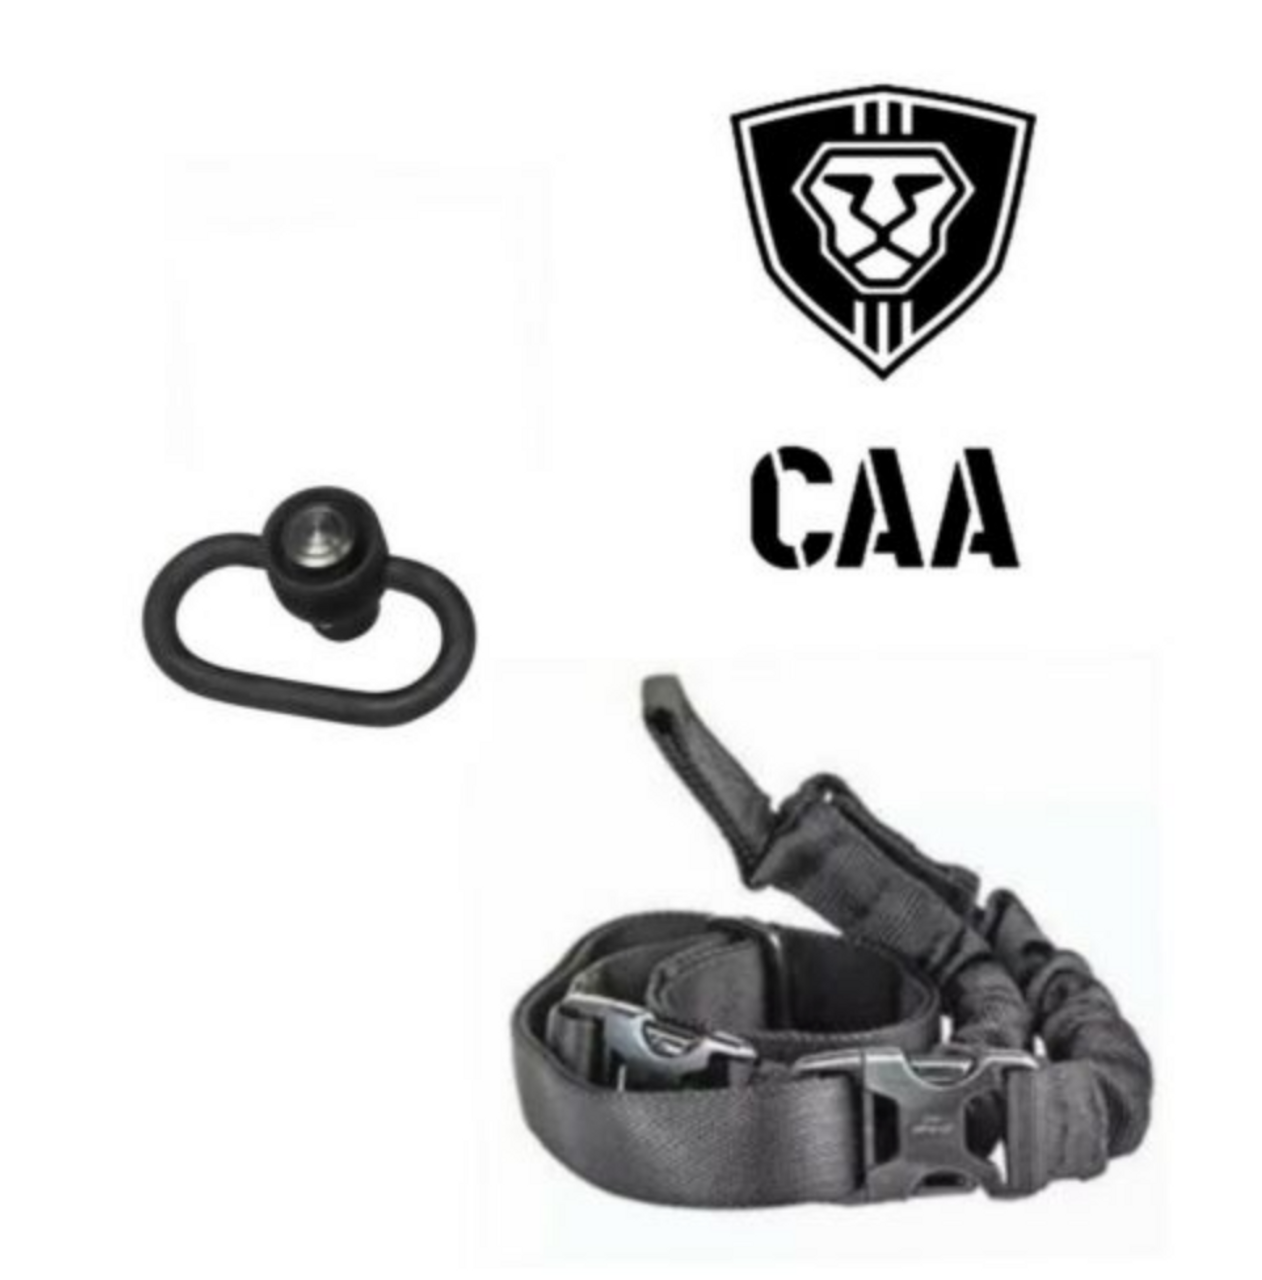 CAA MCK OPS One Point Sling Push Button Swivel Combo for Micro Roni MCK